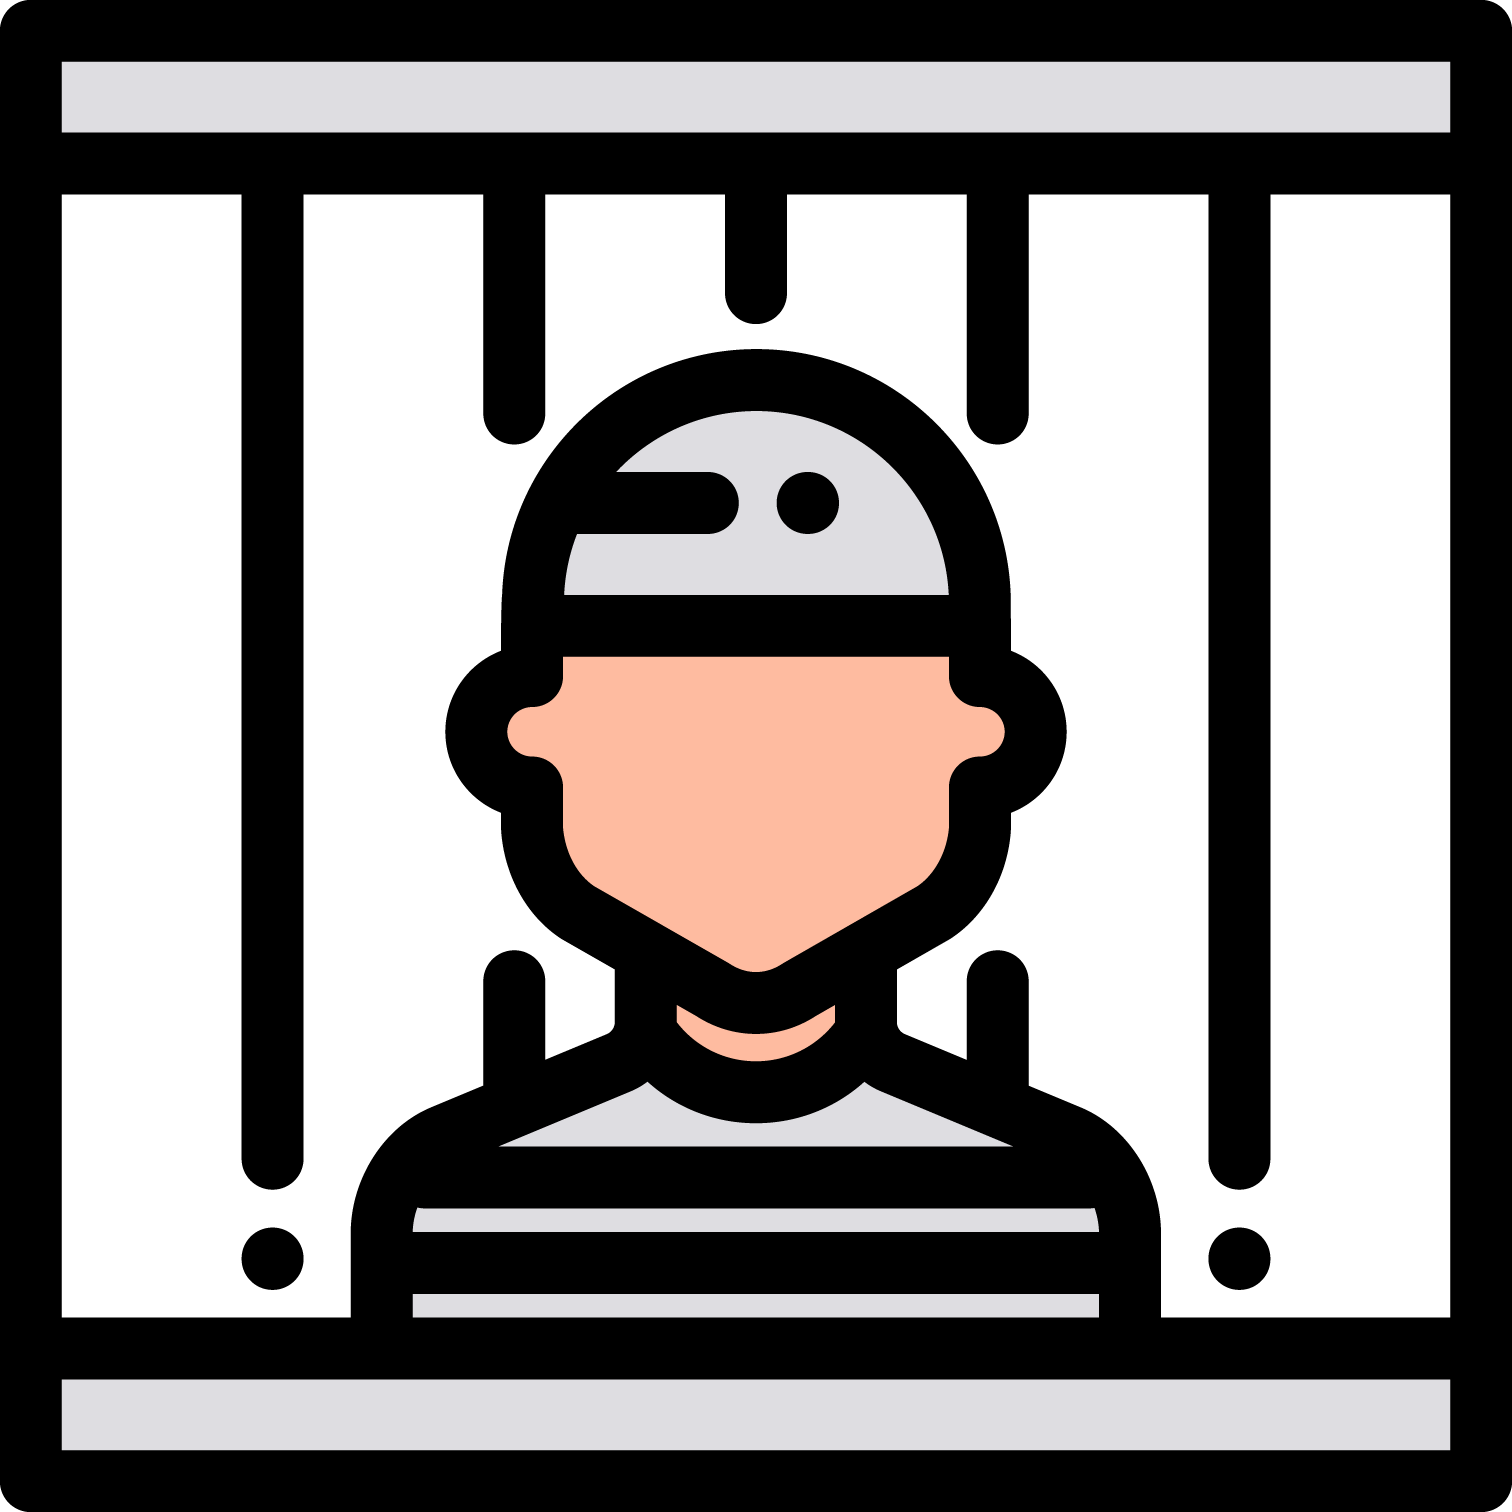 Jail clipart detained. Prison crime police computer